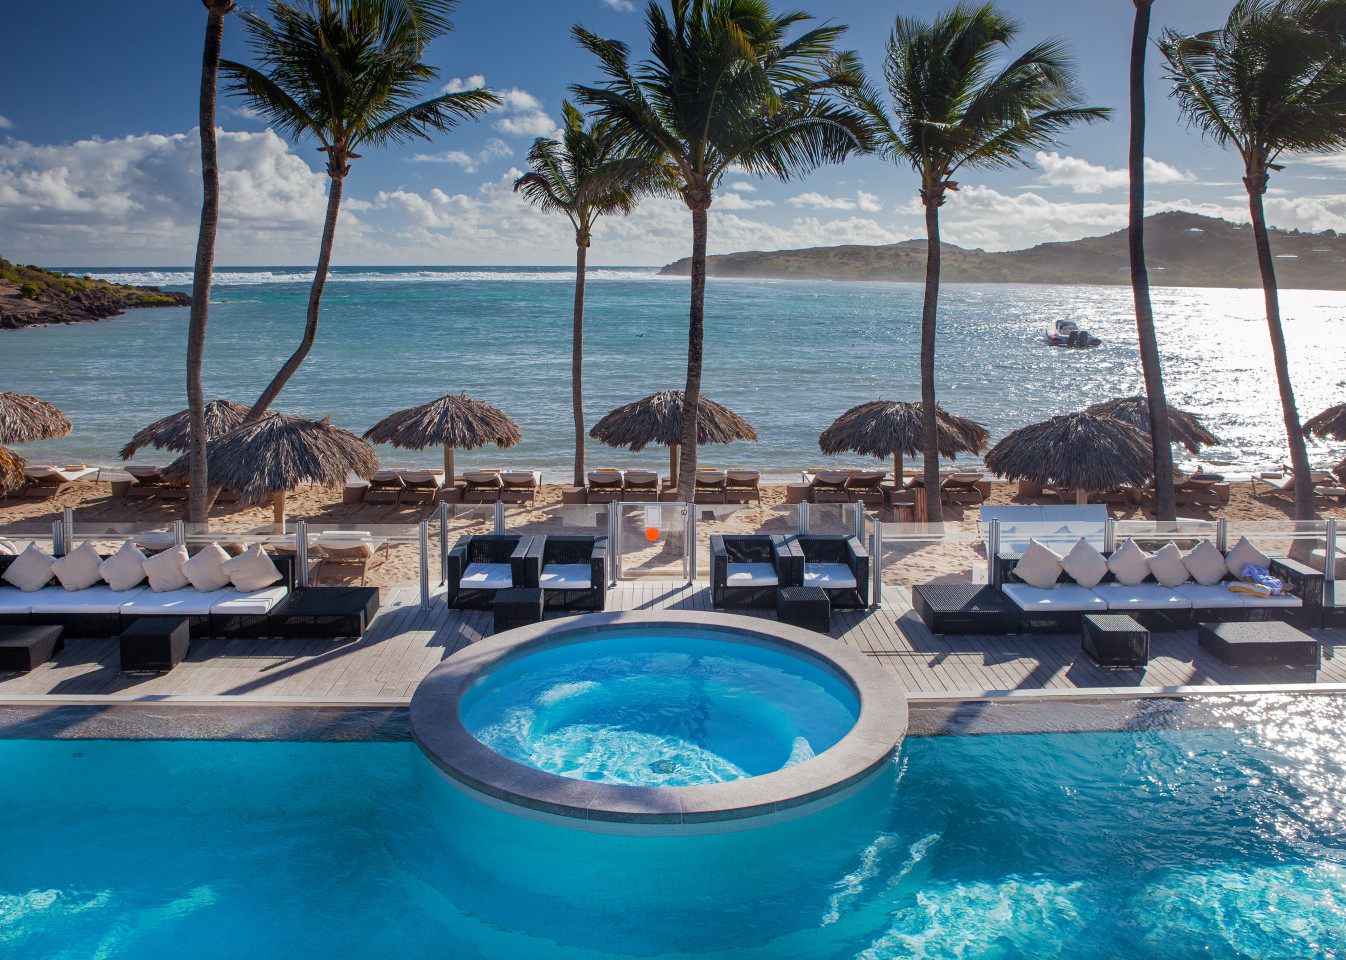 <em>Le Guanahani</em> ... an exquisite resort on très chic St Barth